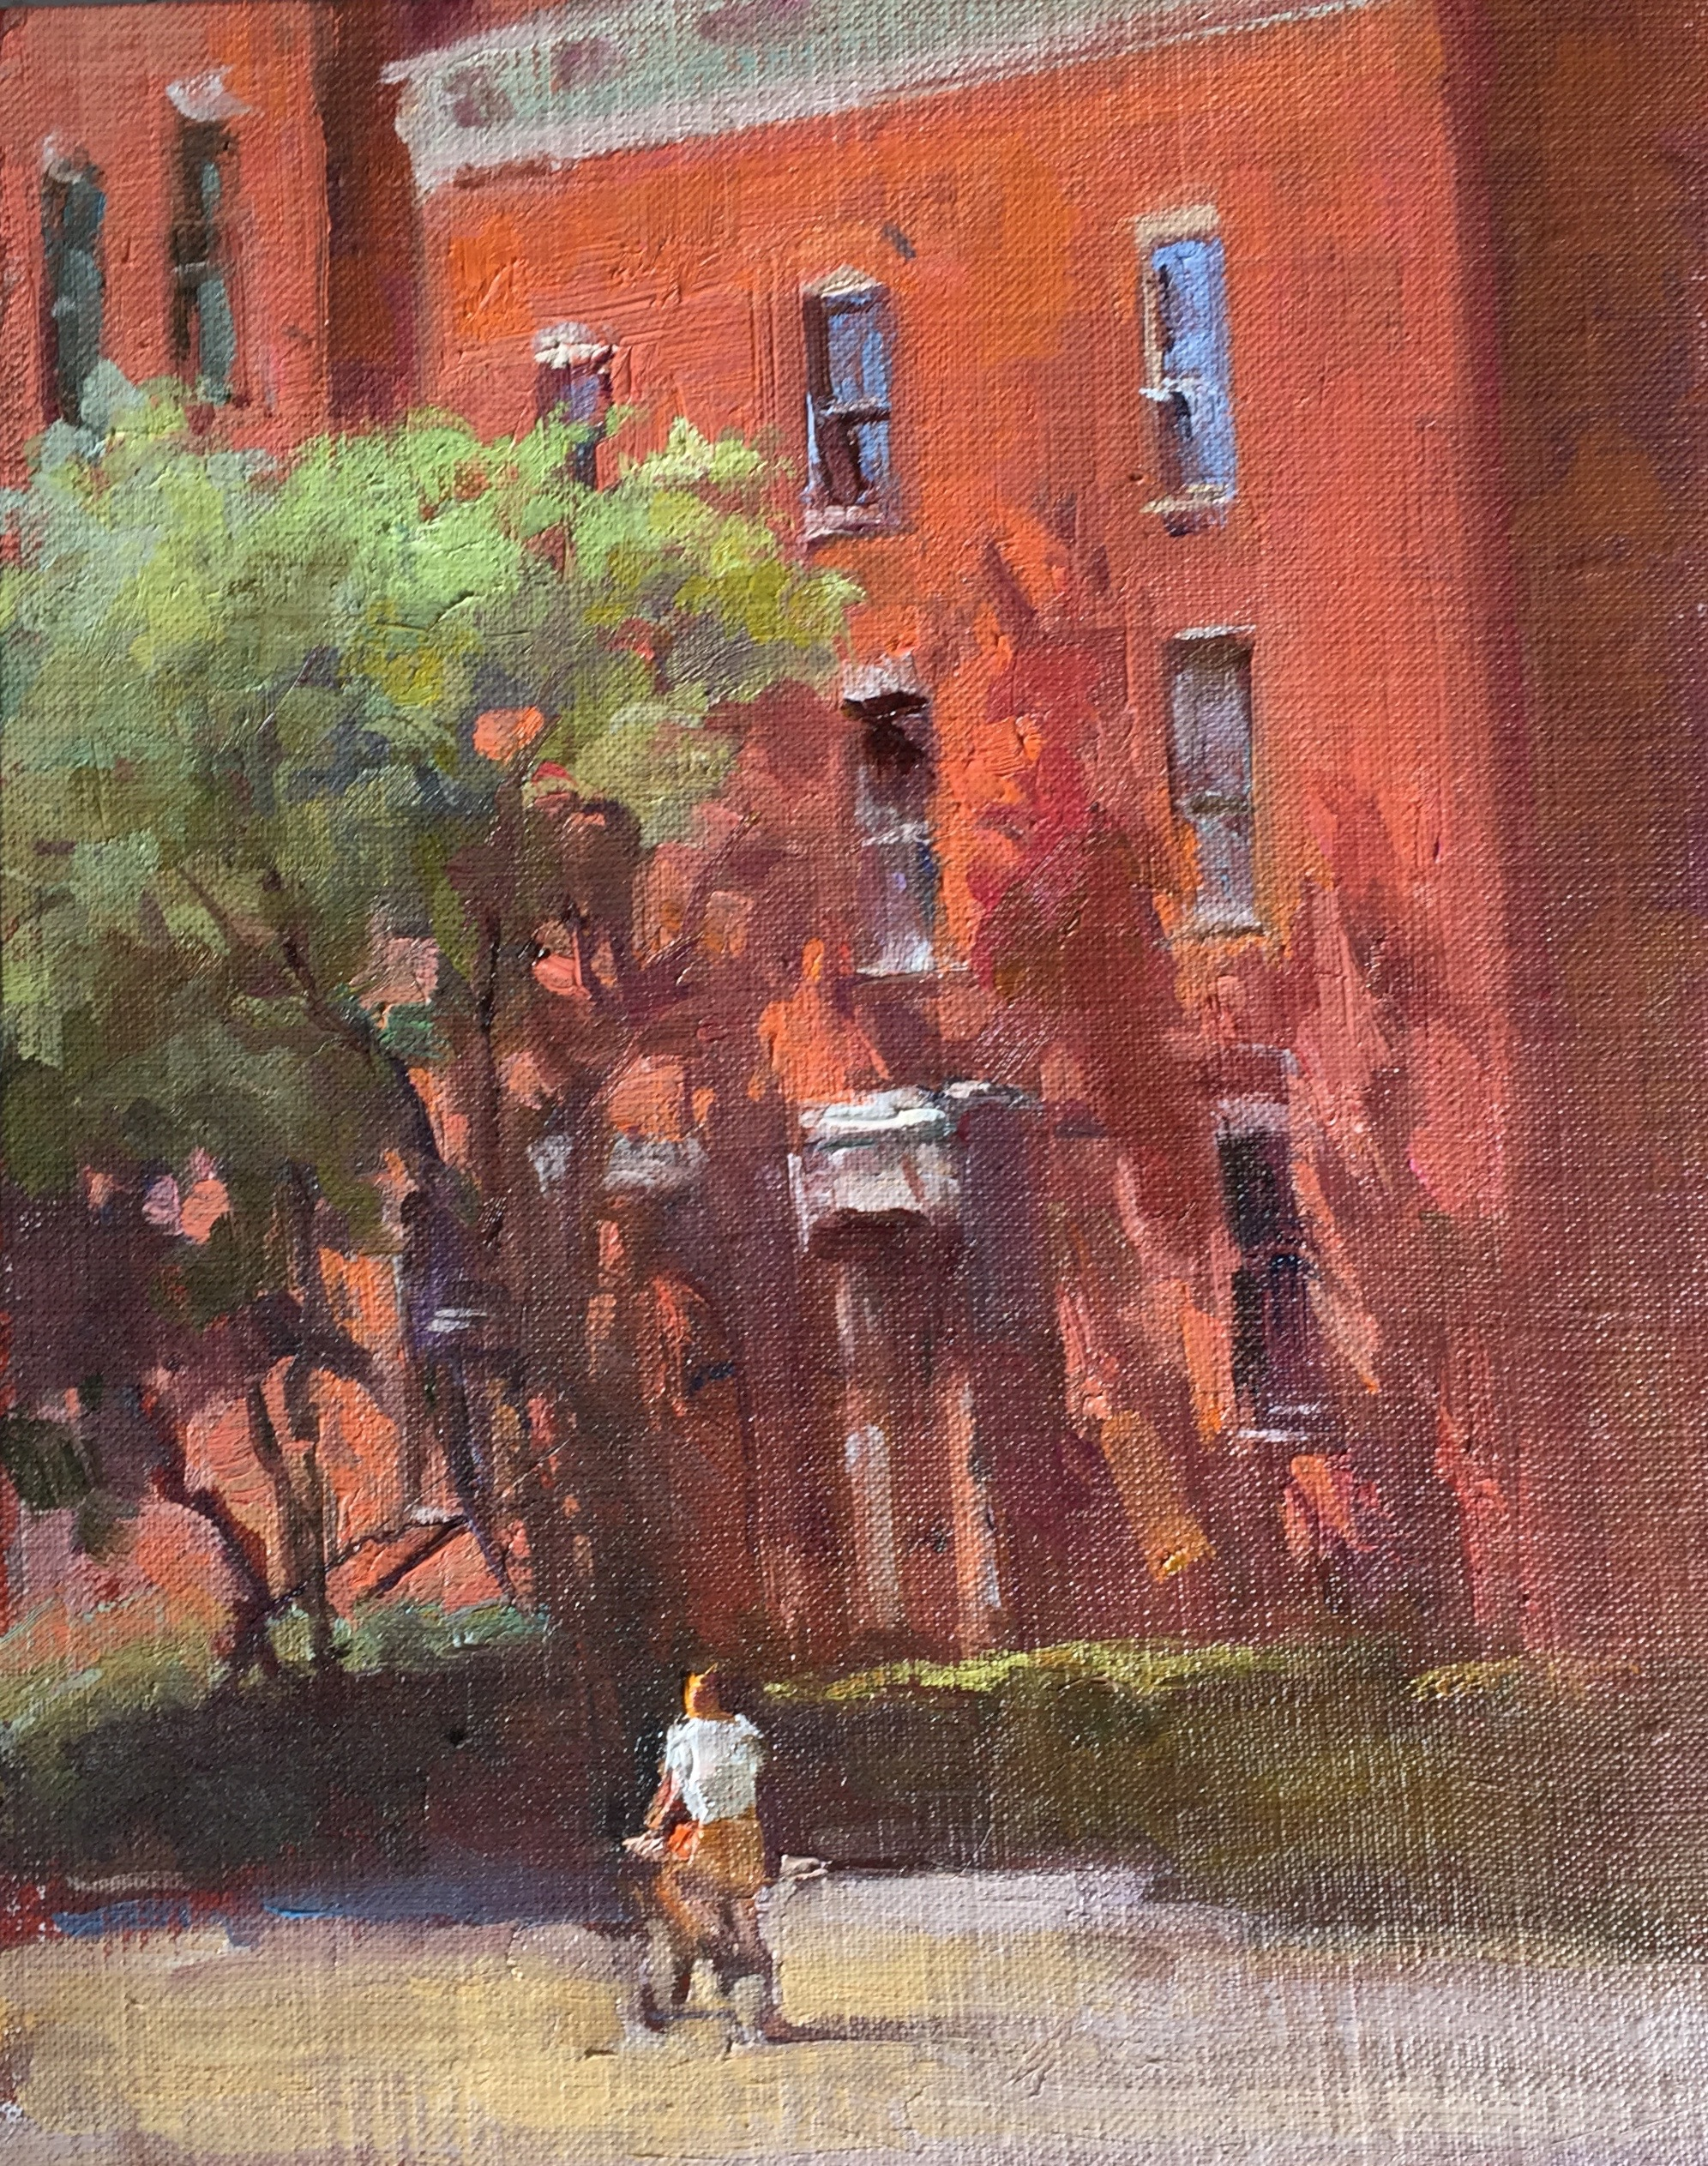 Brownstone 8 x 10 oil on board